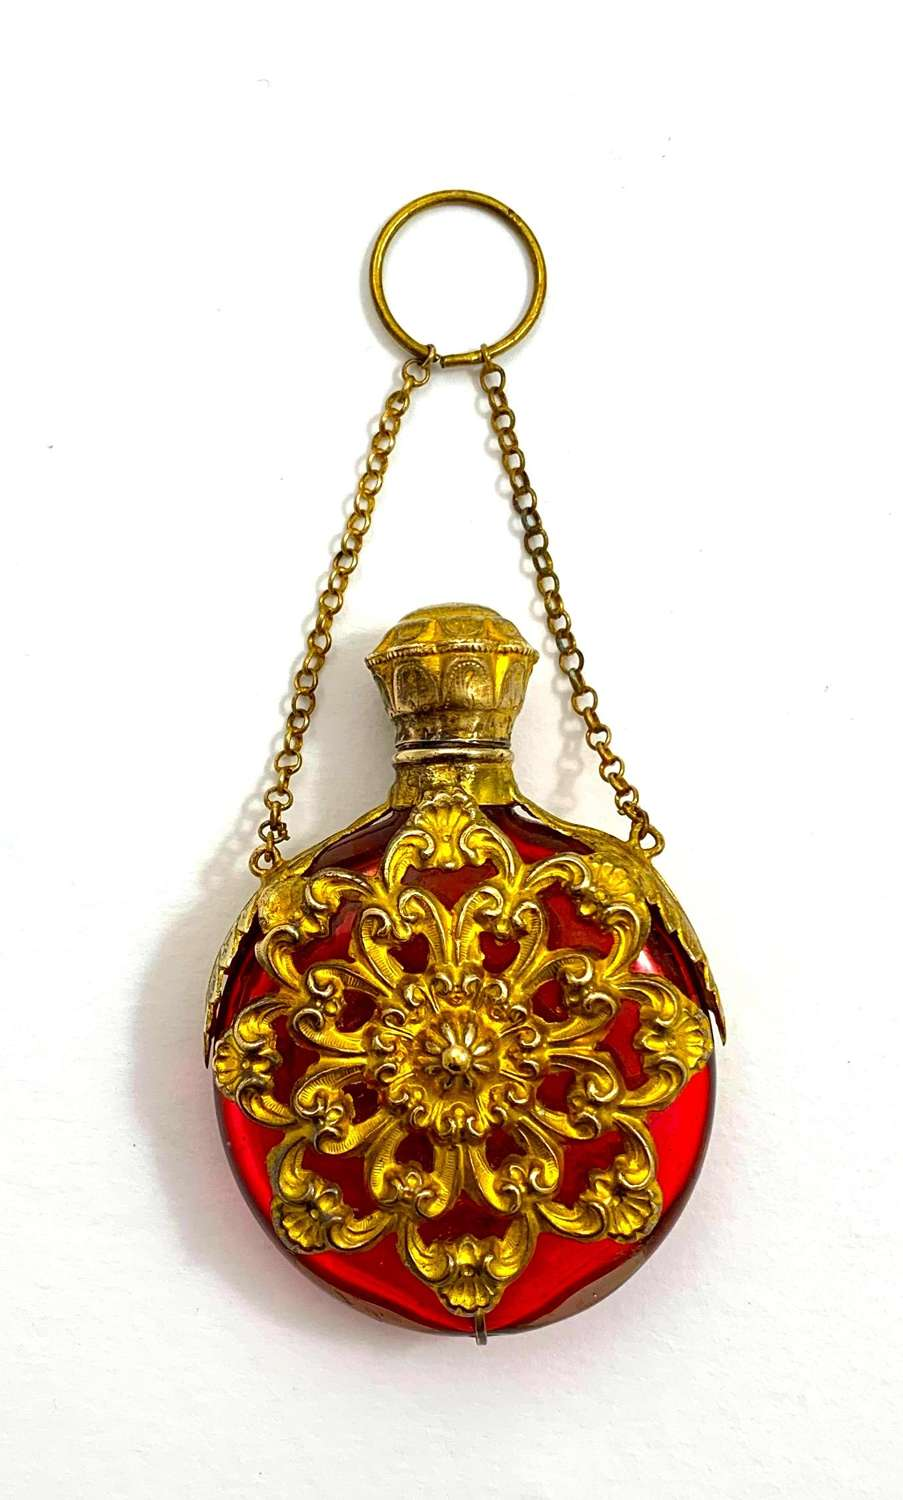 Antique Palais Royal Ruby RedGlass Scent Bottle with Chatelaine